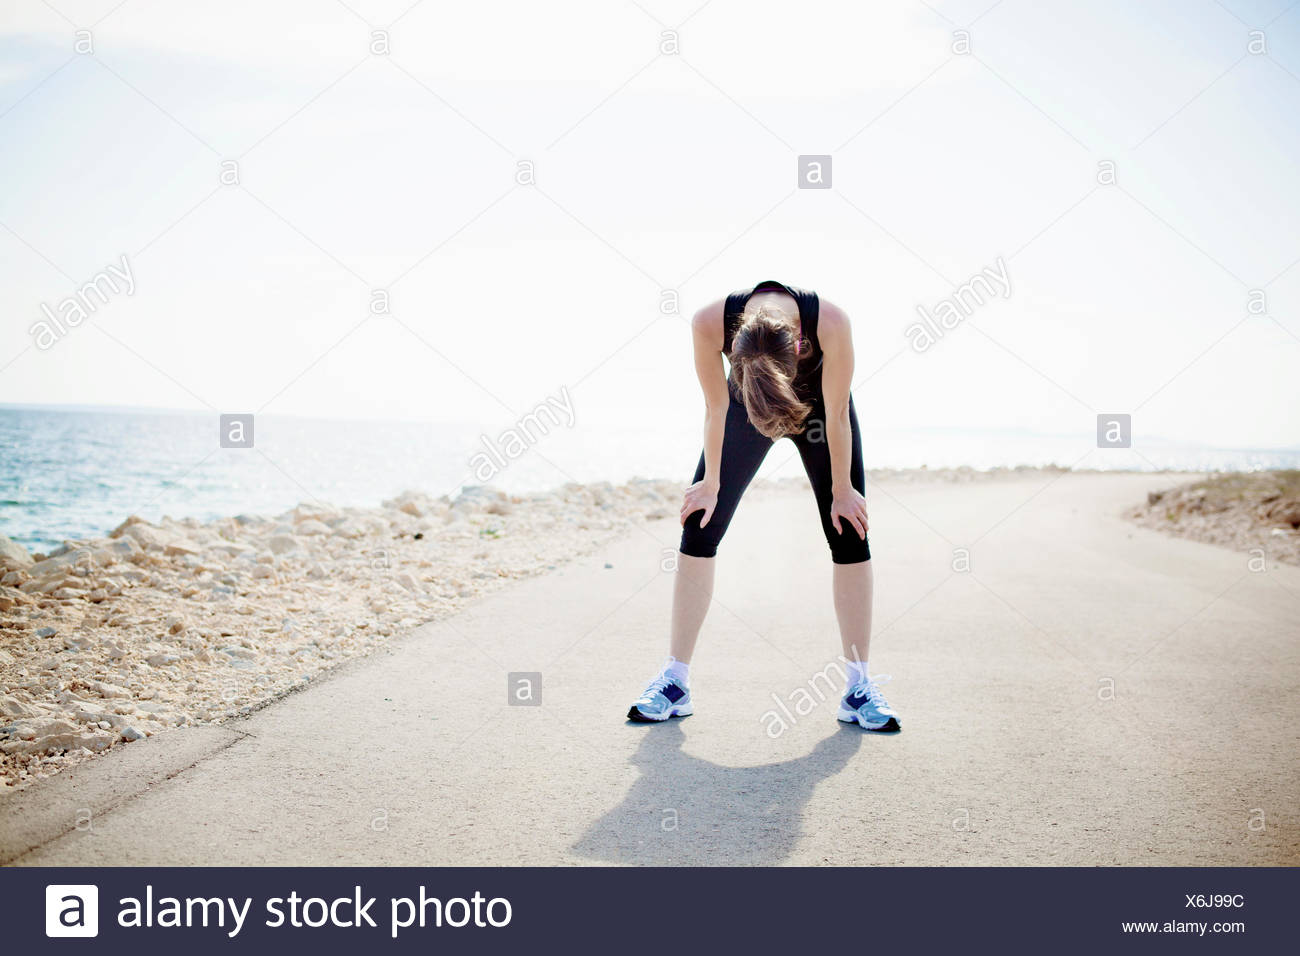 Woman in sports clothing standing on waterfront path - Stock Image